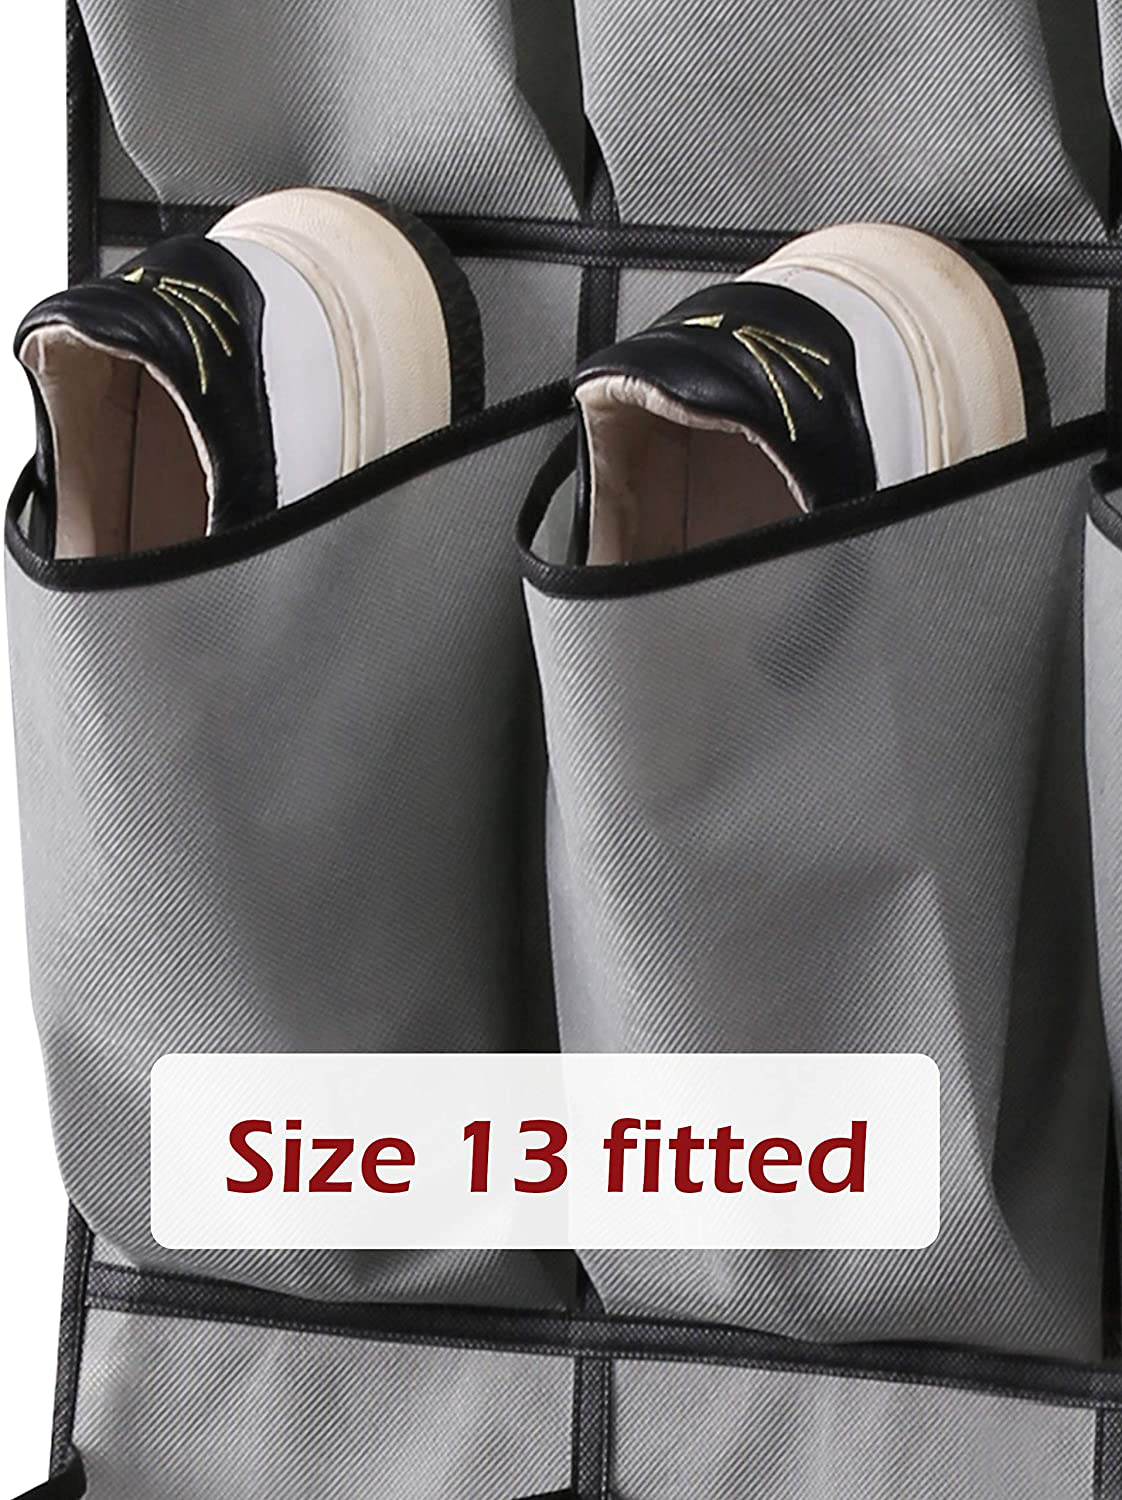 KEETDY Hanging Organizer Over The Door Shoe Rack with 24 Large Durable Pocket for Storage Shoe Bag Hanger Organizer for Door 2 Pack, Grey